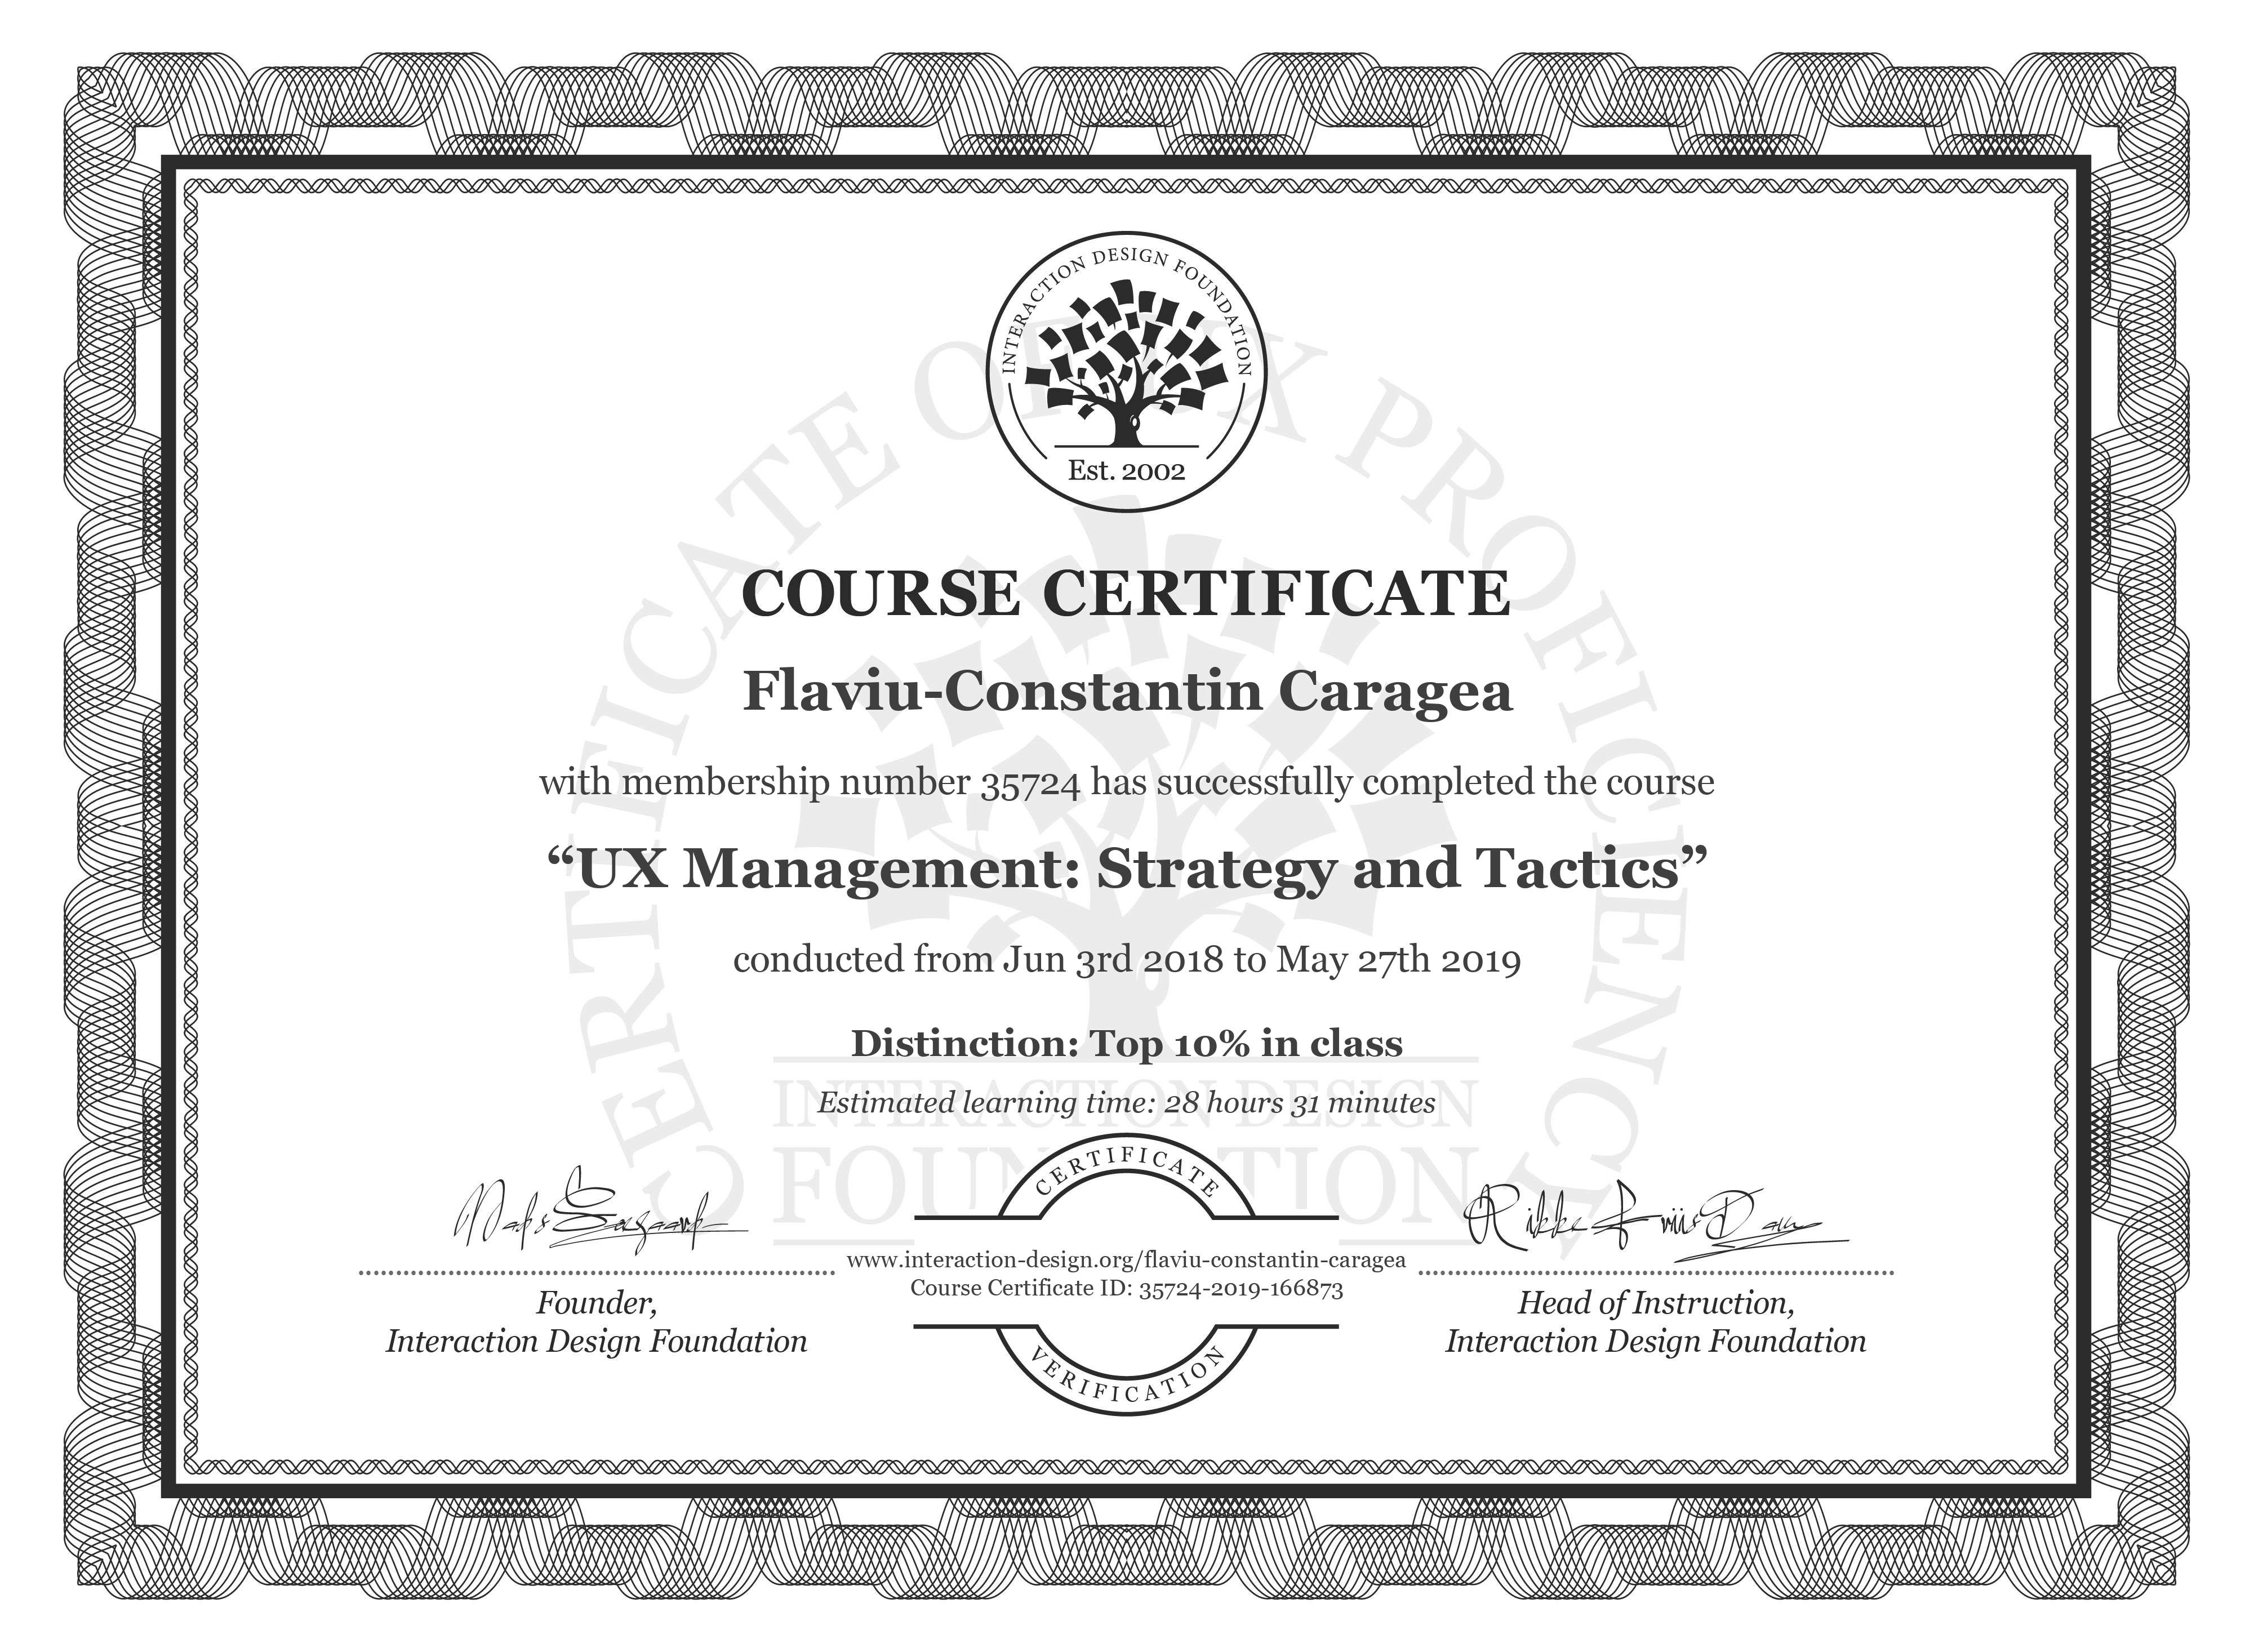 Flaviu-Constantin Caragea: Course Certificate - UX Management: Strategy and Tactics